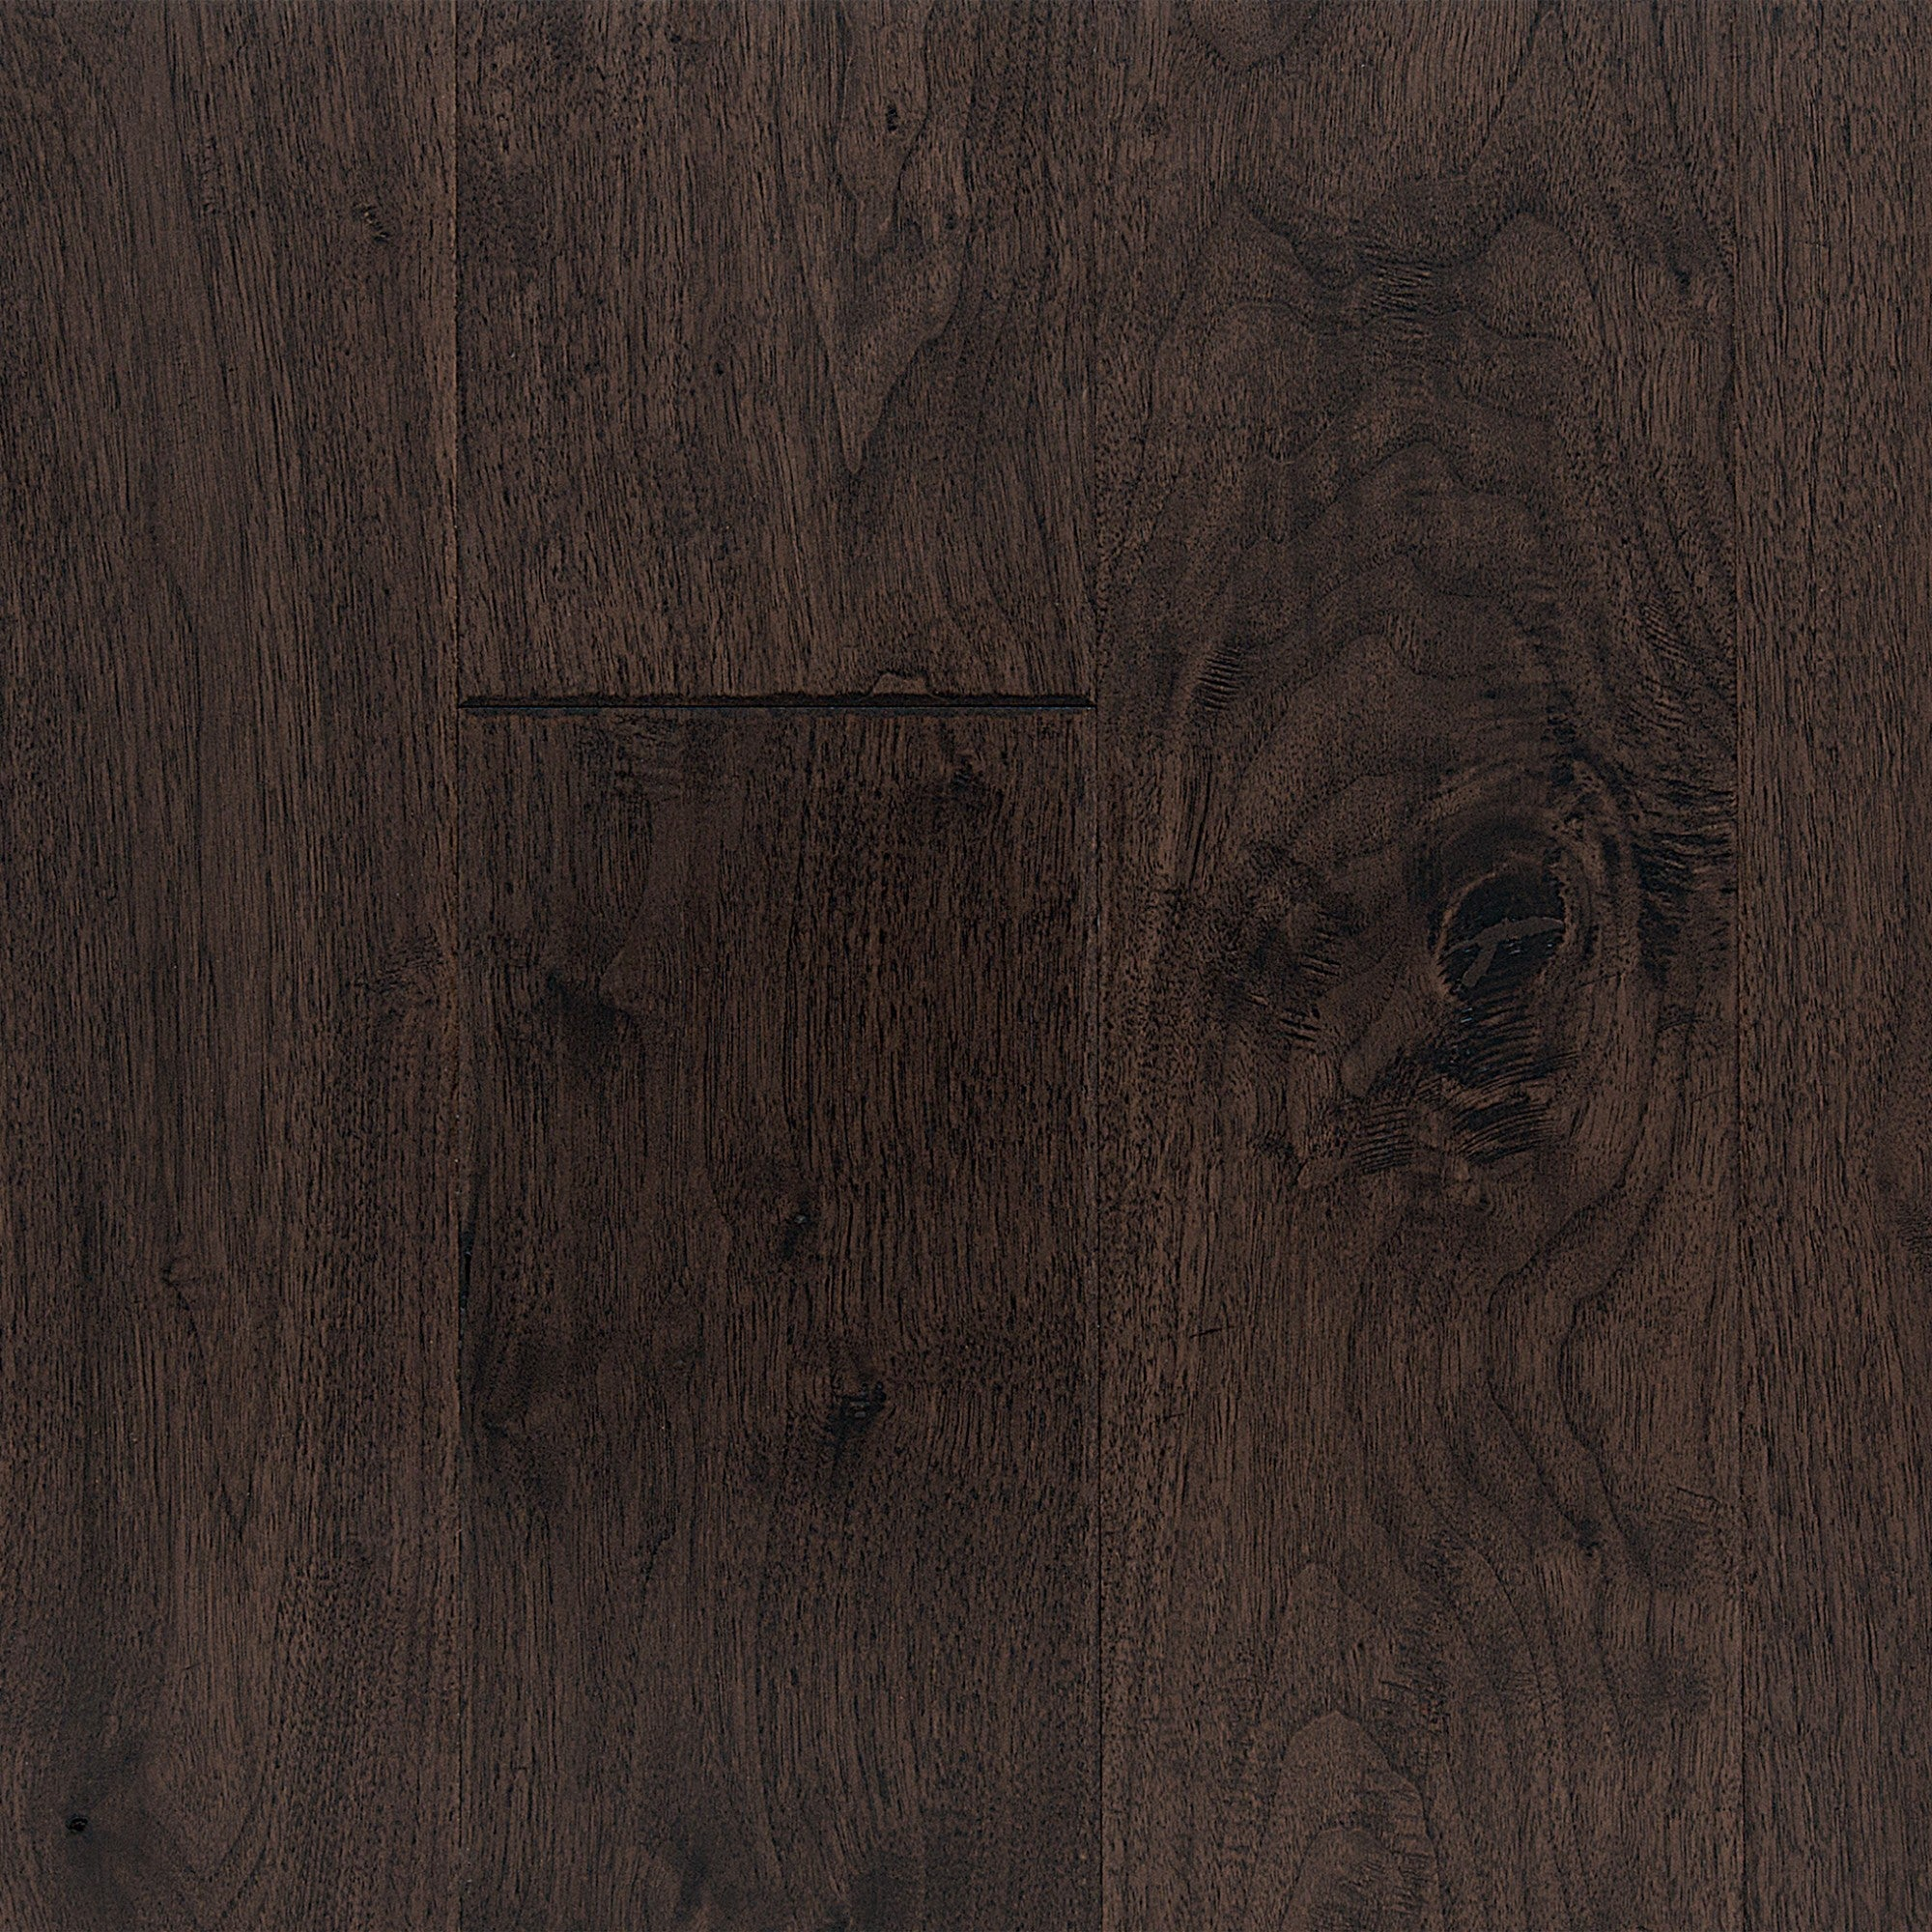 Handscraped - Black Walnut Medieval